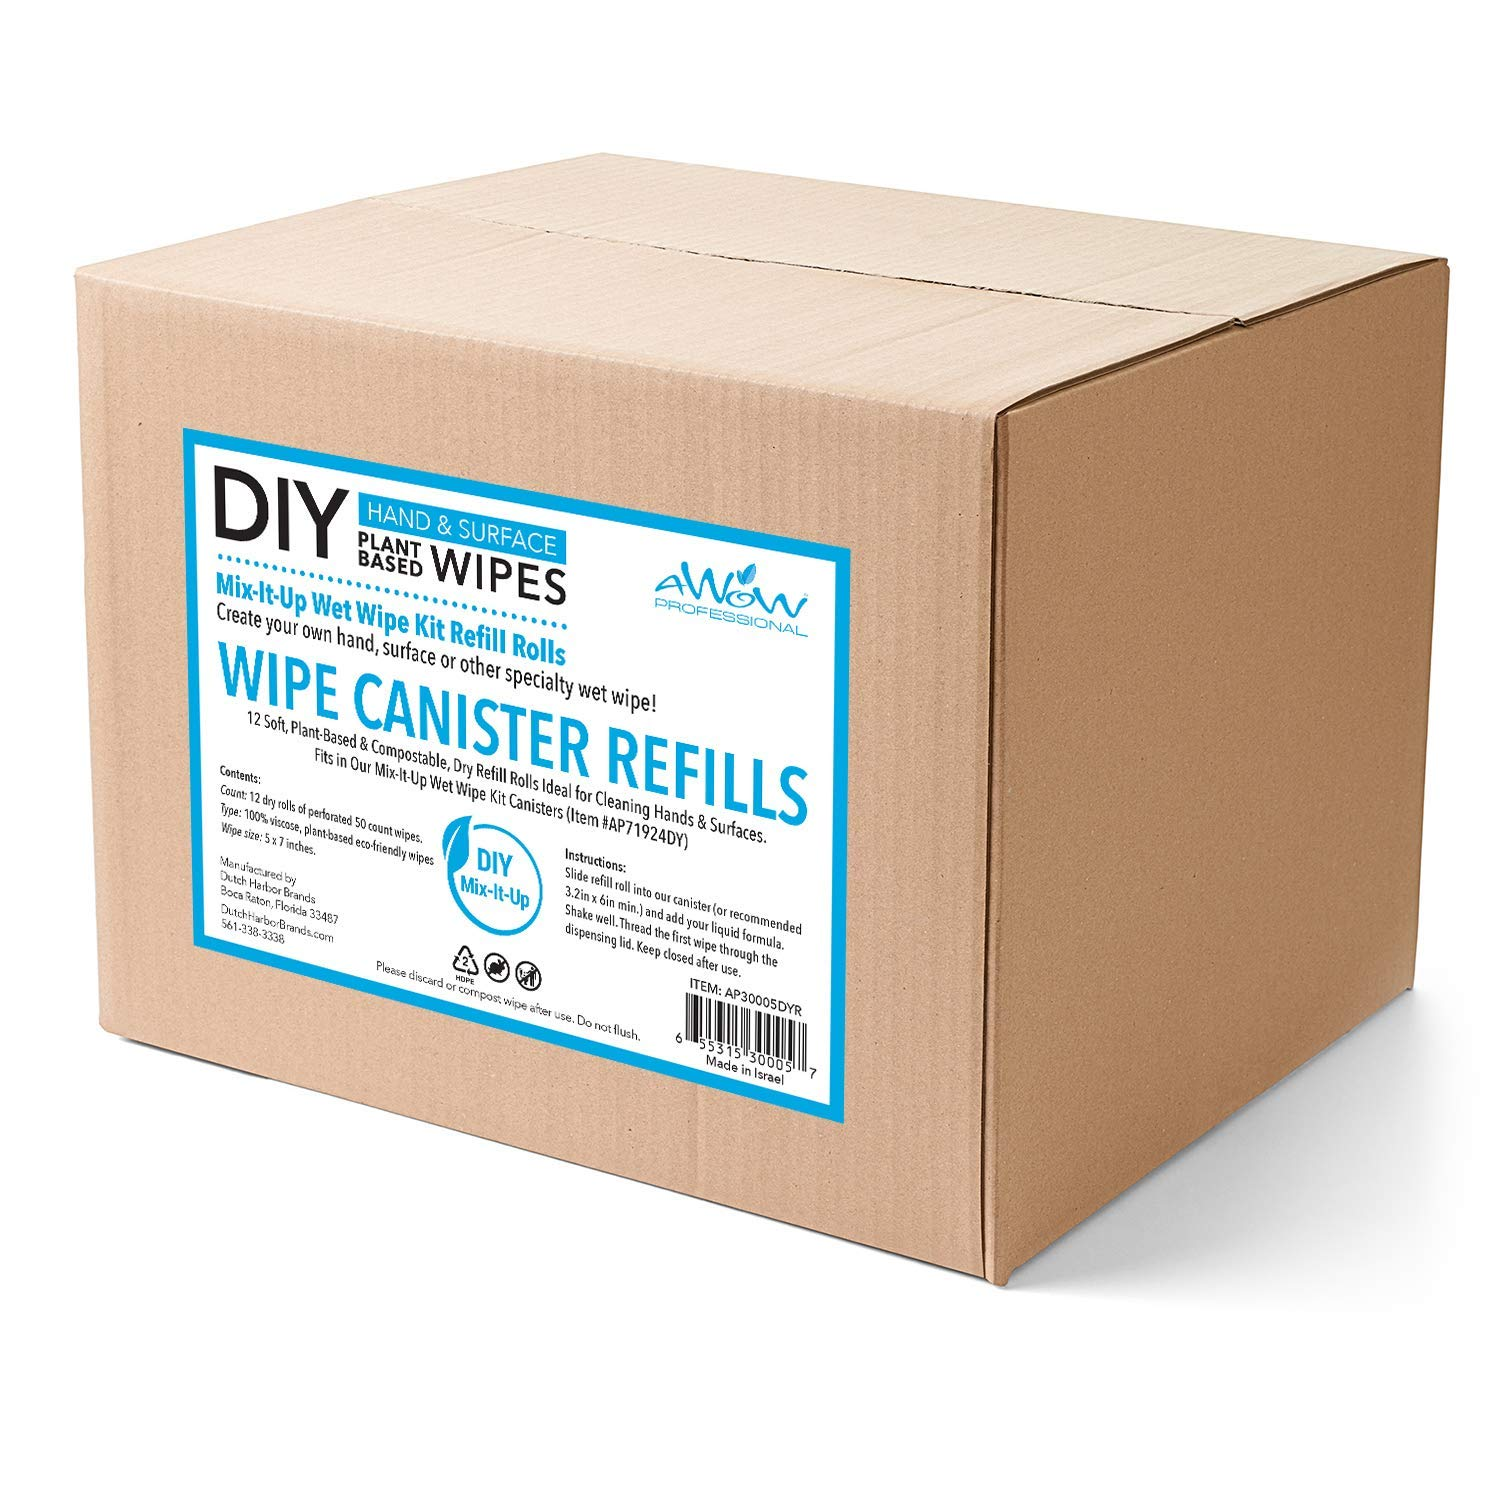 AWOW Professional DIY Hand & Surface, 12 50ct Refill Perforated Dry Wipe Rolls for Canisters, 600 Compostable Wipes